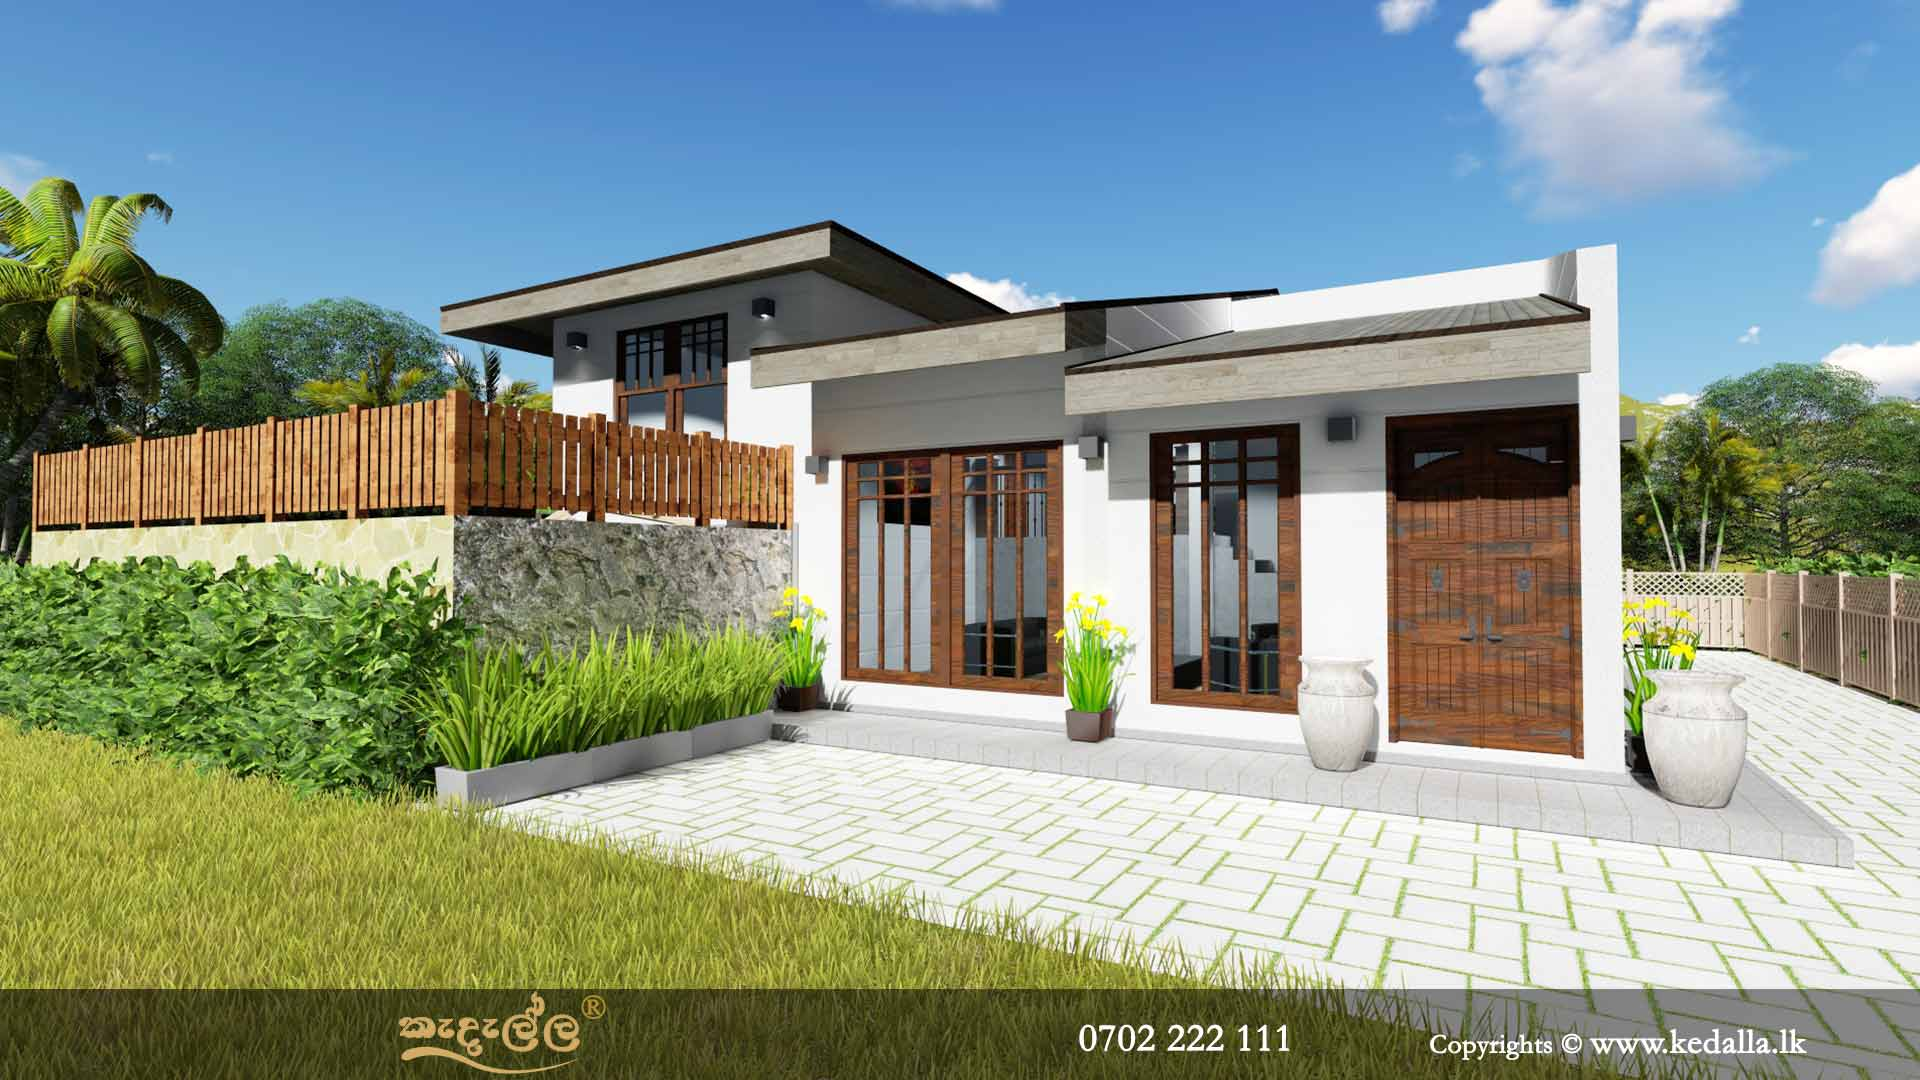 Peachy 3D Small House Plans Latest Home Designs In Sri Lanka Kedalla Lk Interior Design Ideas Oteneahmetsinanyavuzinfo